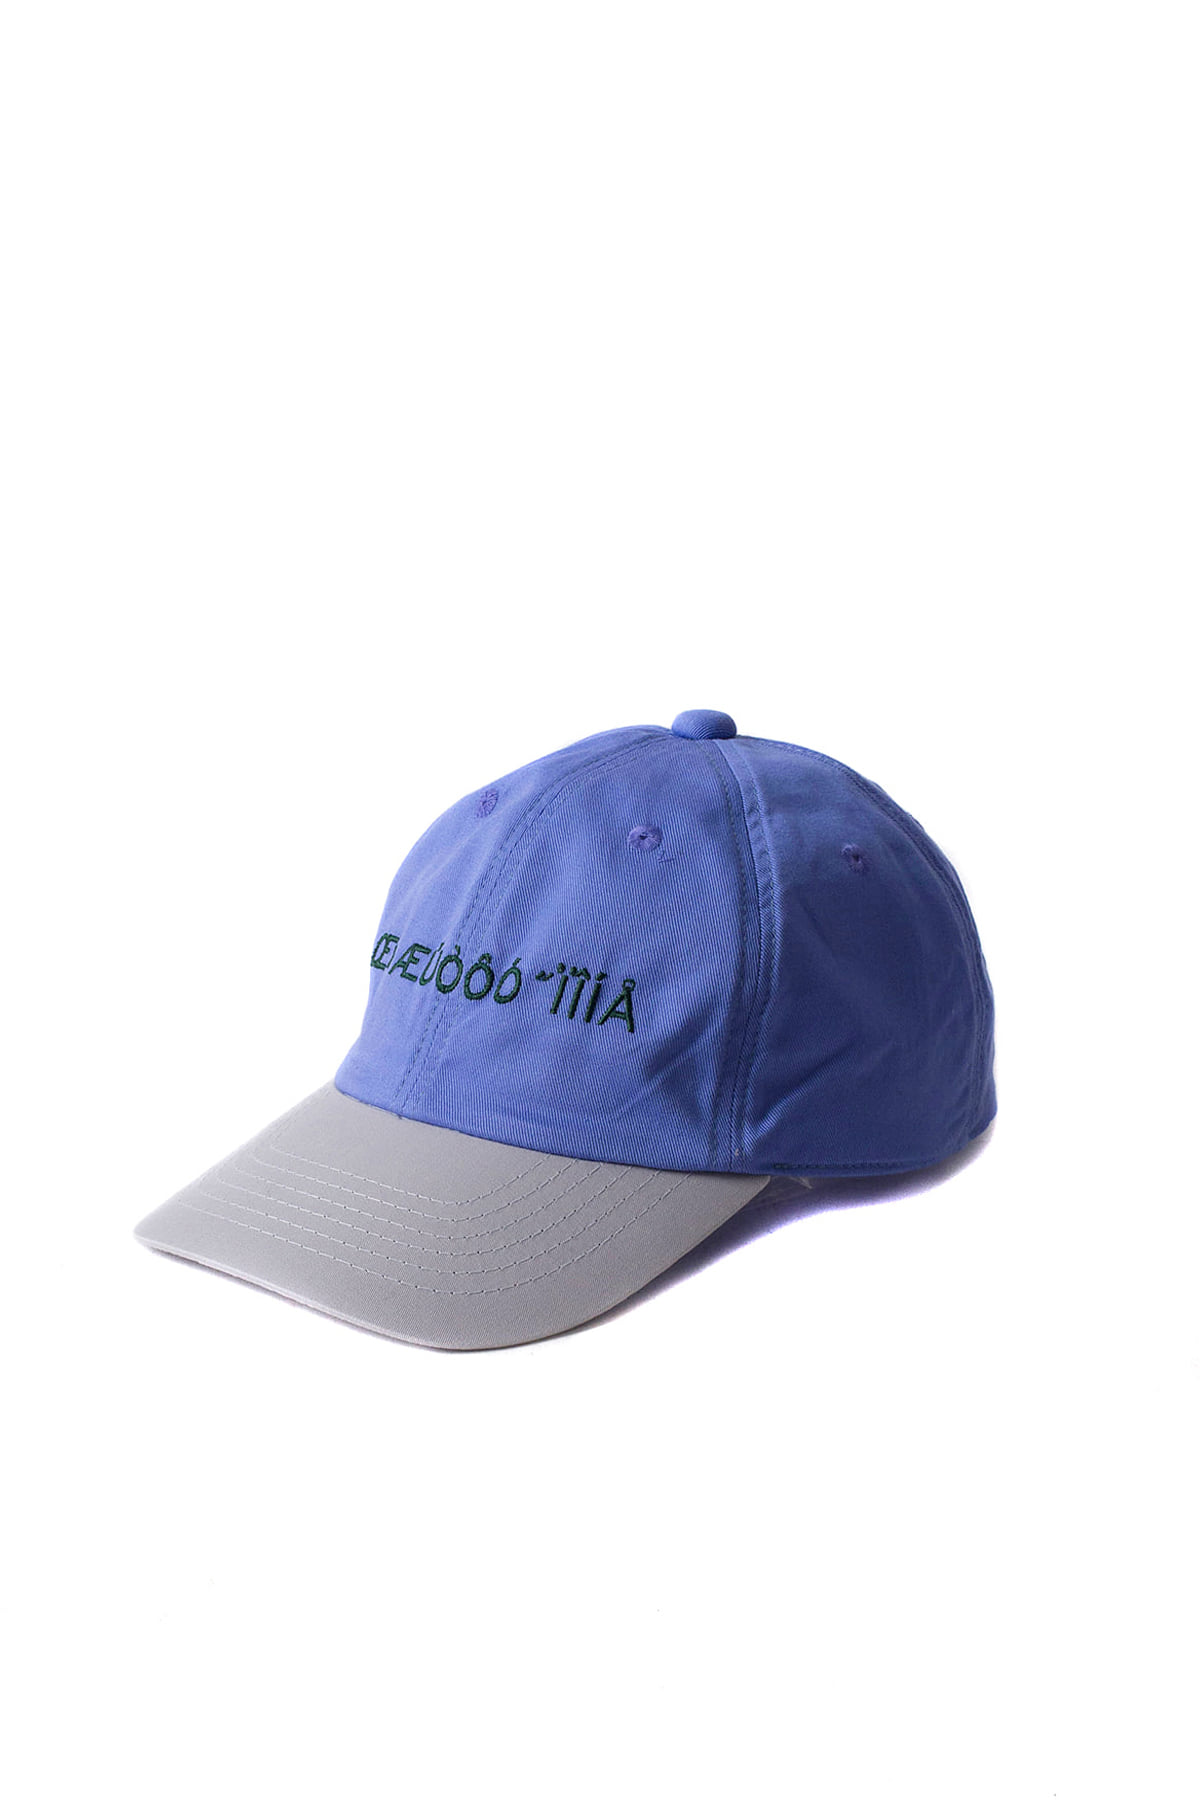 soe : Cap (Purple)